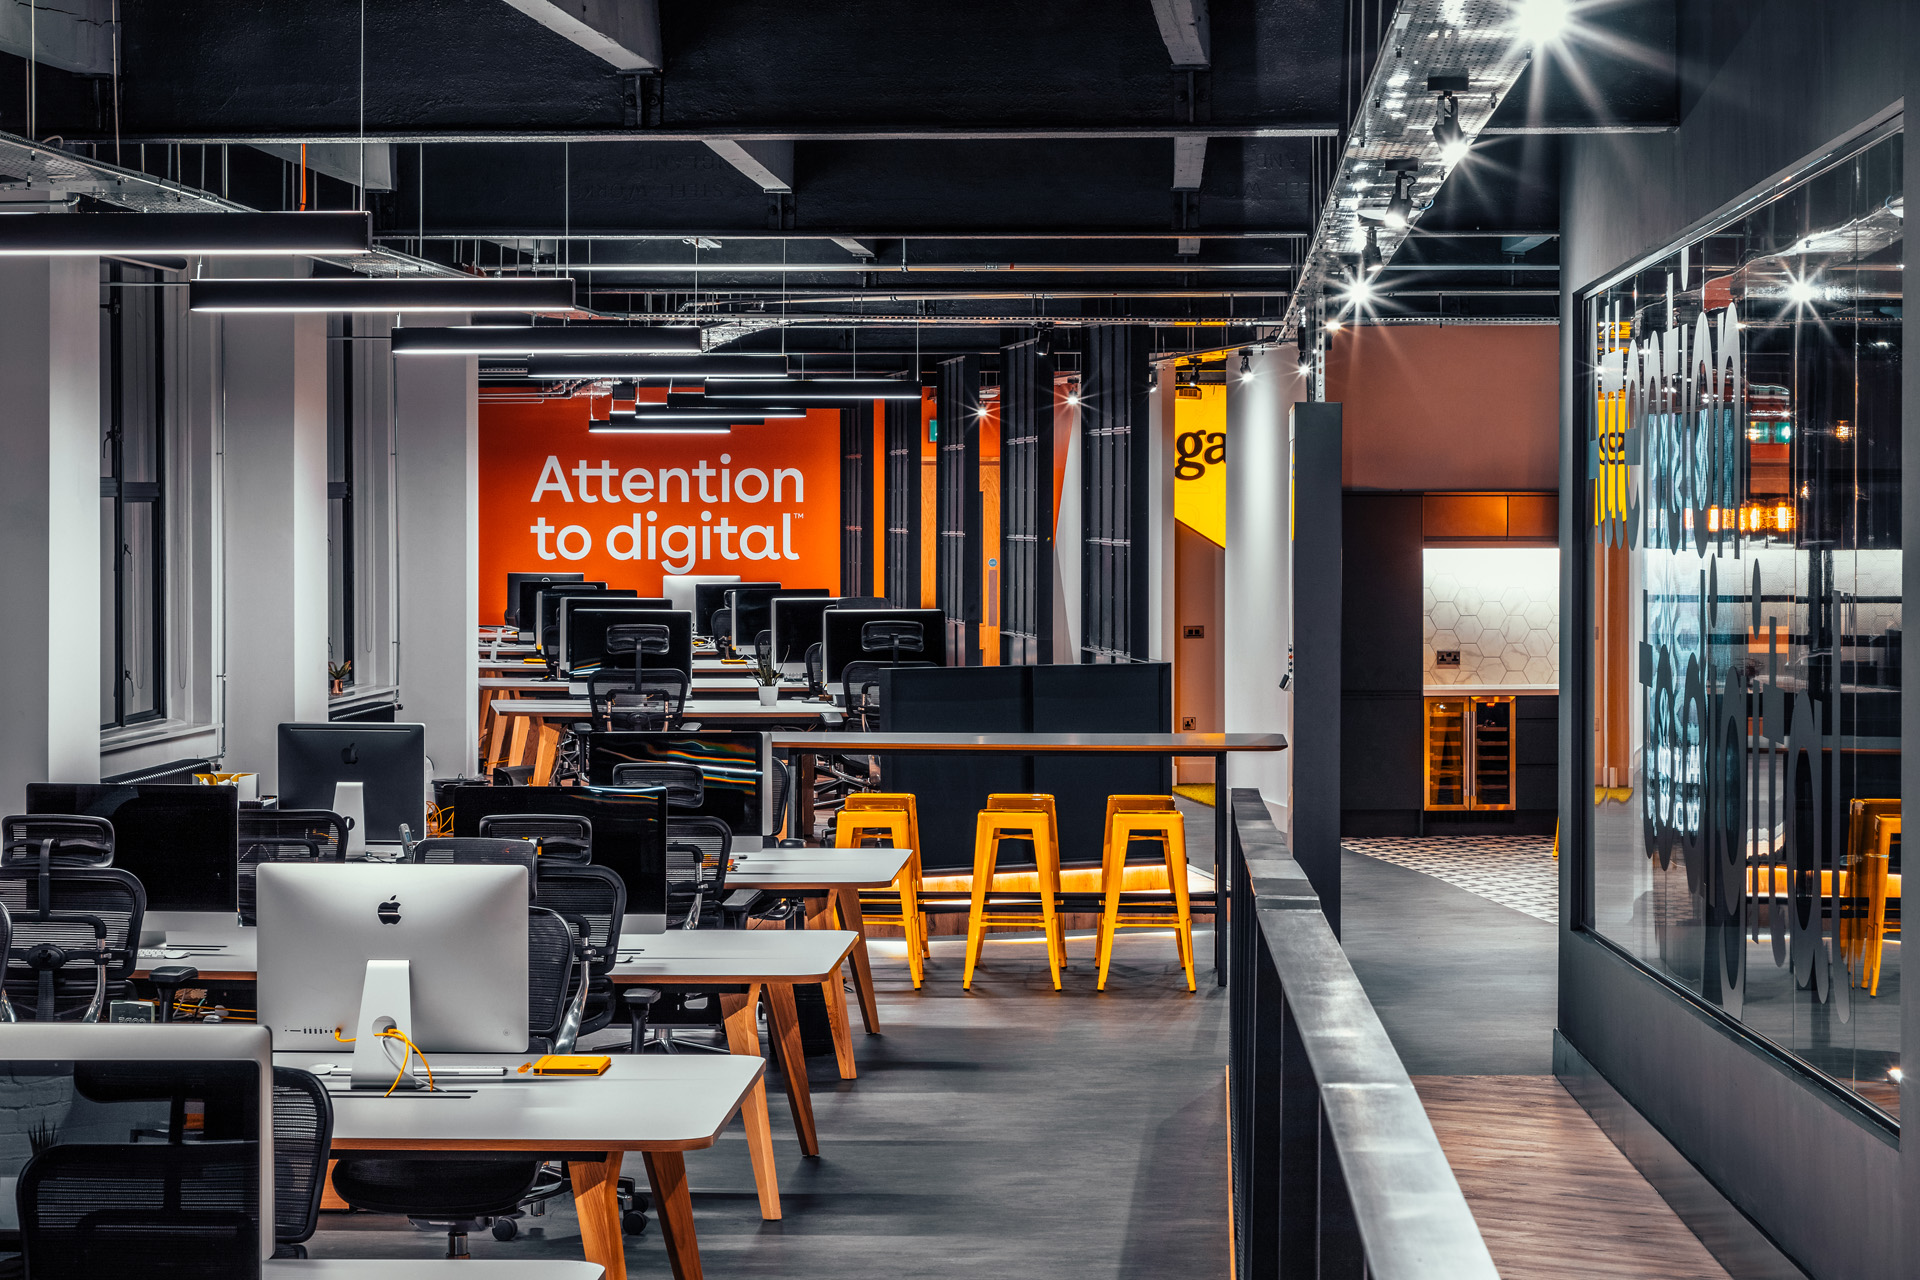 Increased productivity? Improved staff wellbeing? Better cross-team collaboration? Which targets are you looking to achieve with your office refurbishment?